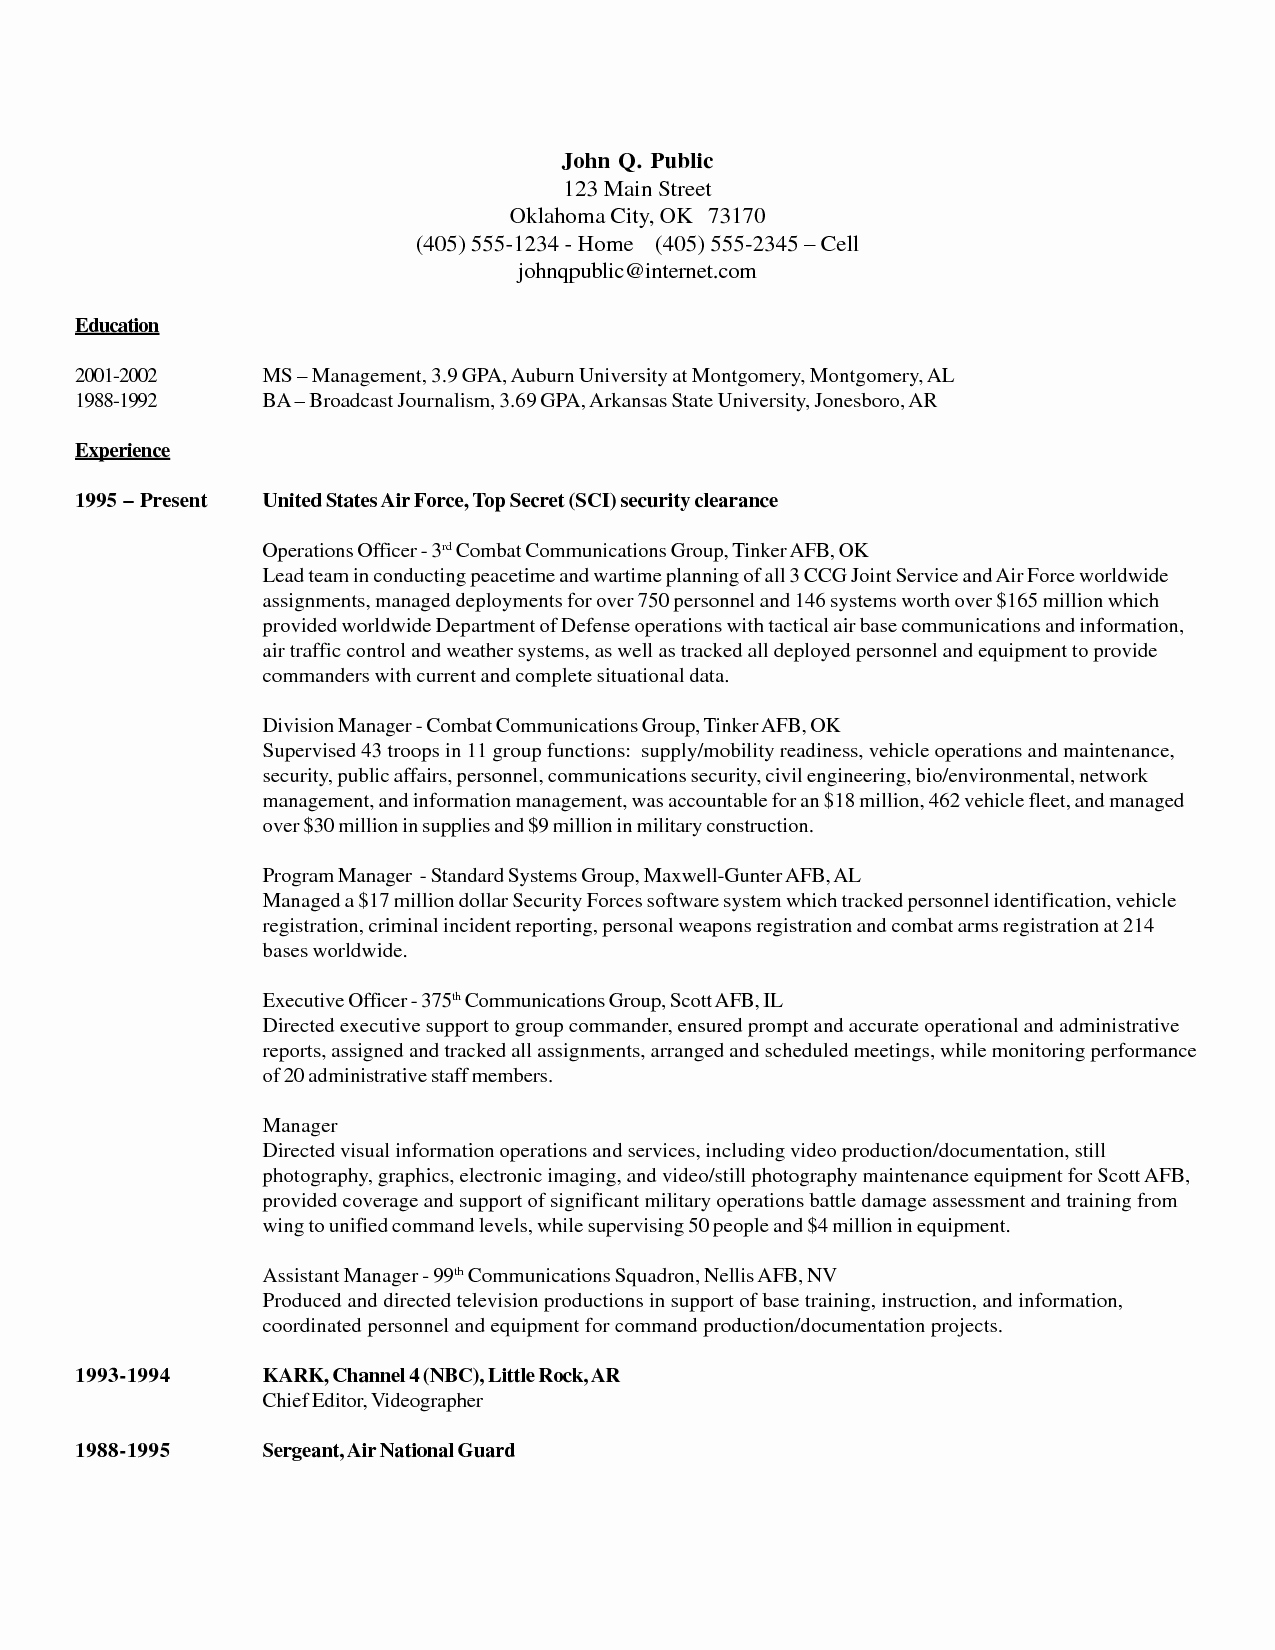 Entry Level Security Ficer Cover Letter Sample